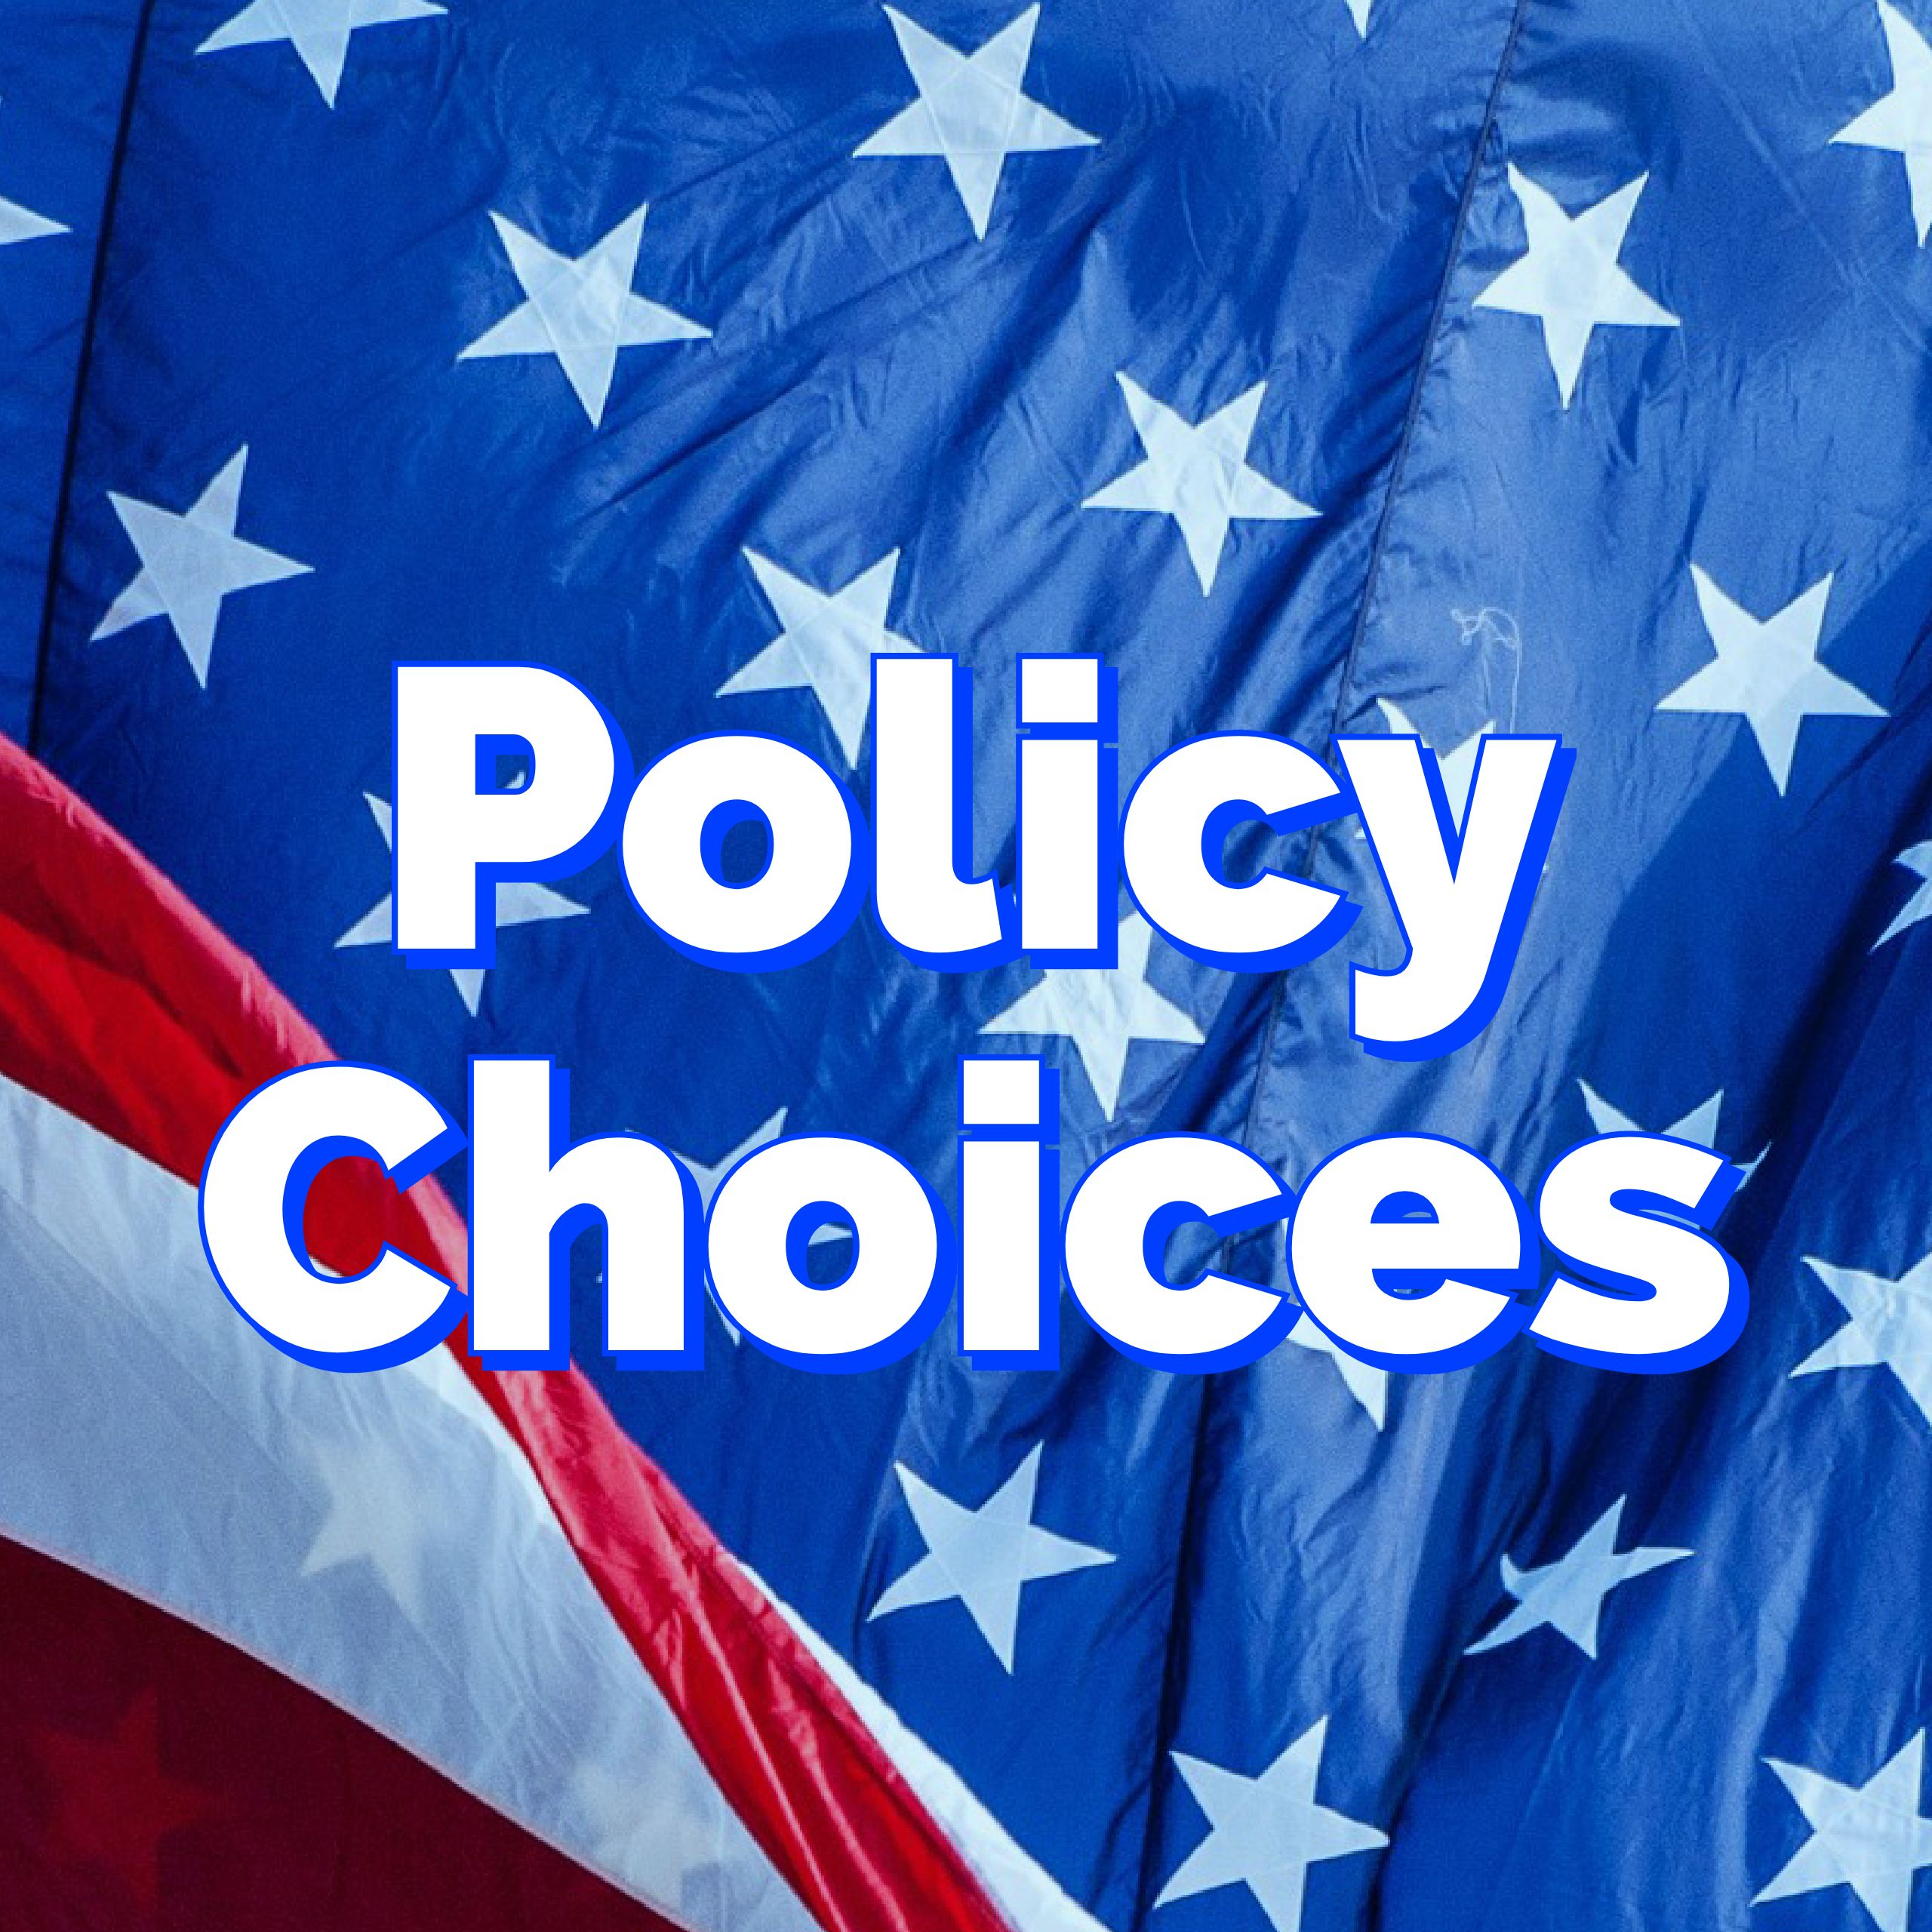 Policy Choices Logo Image